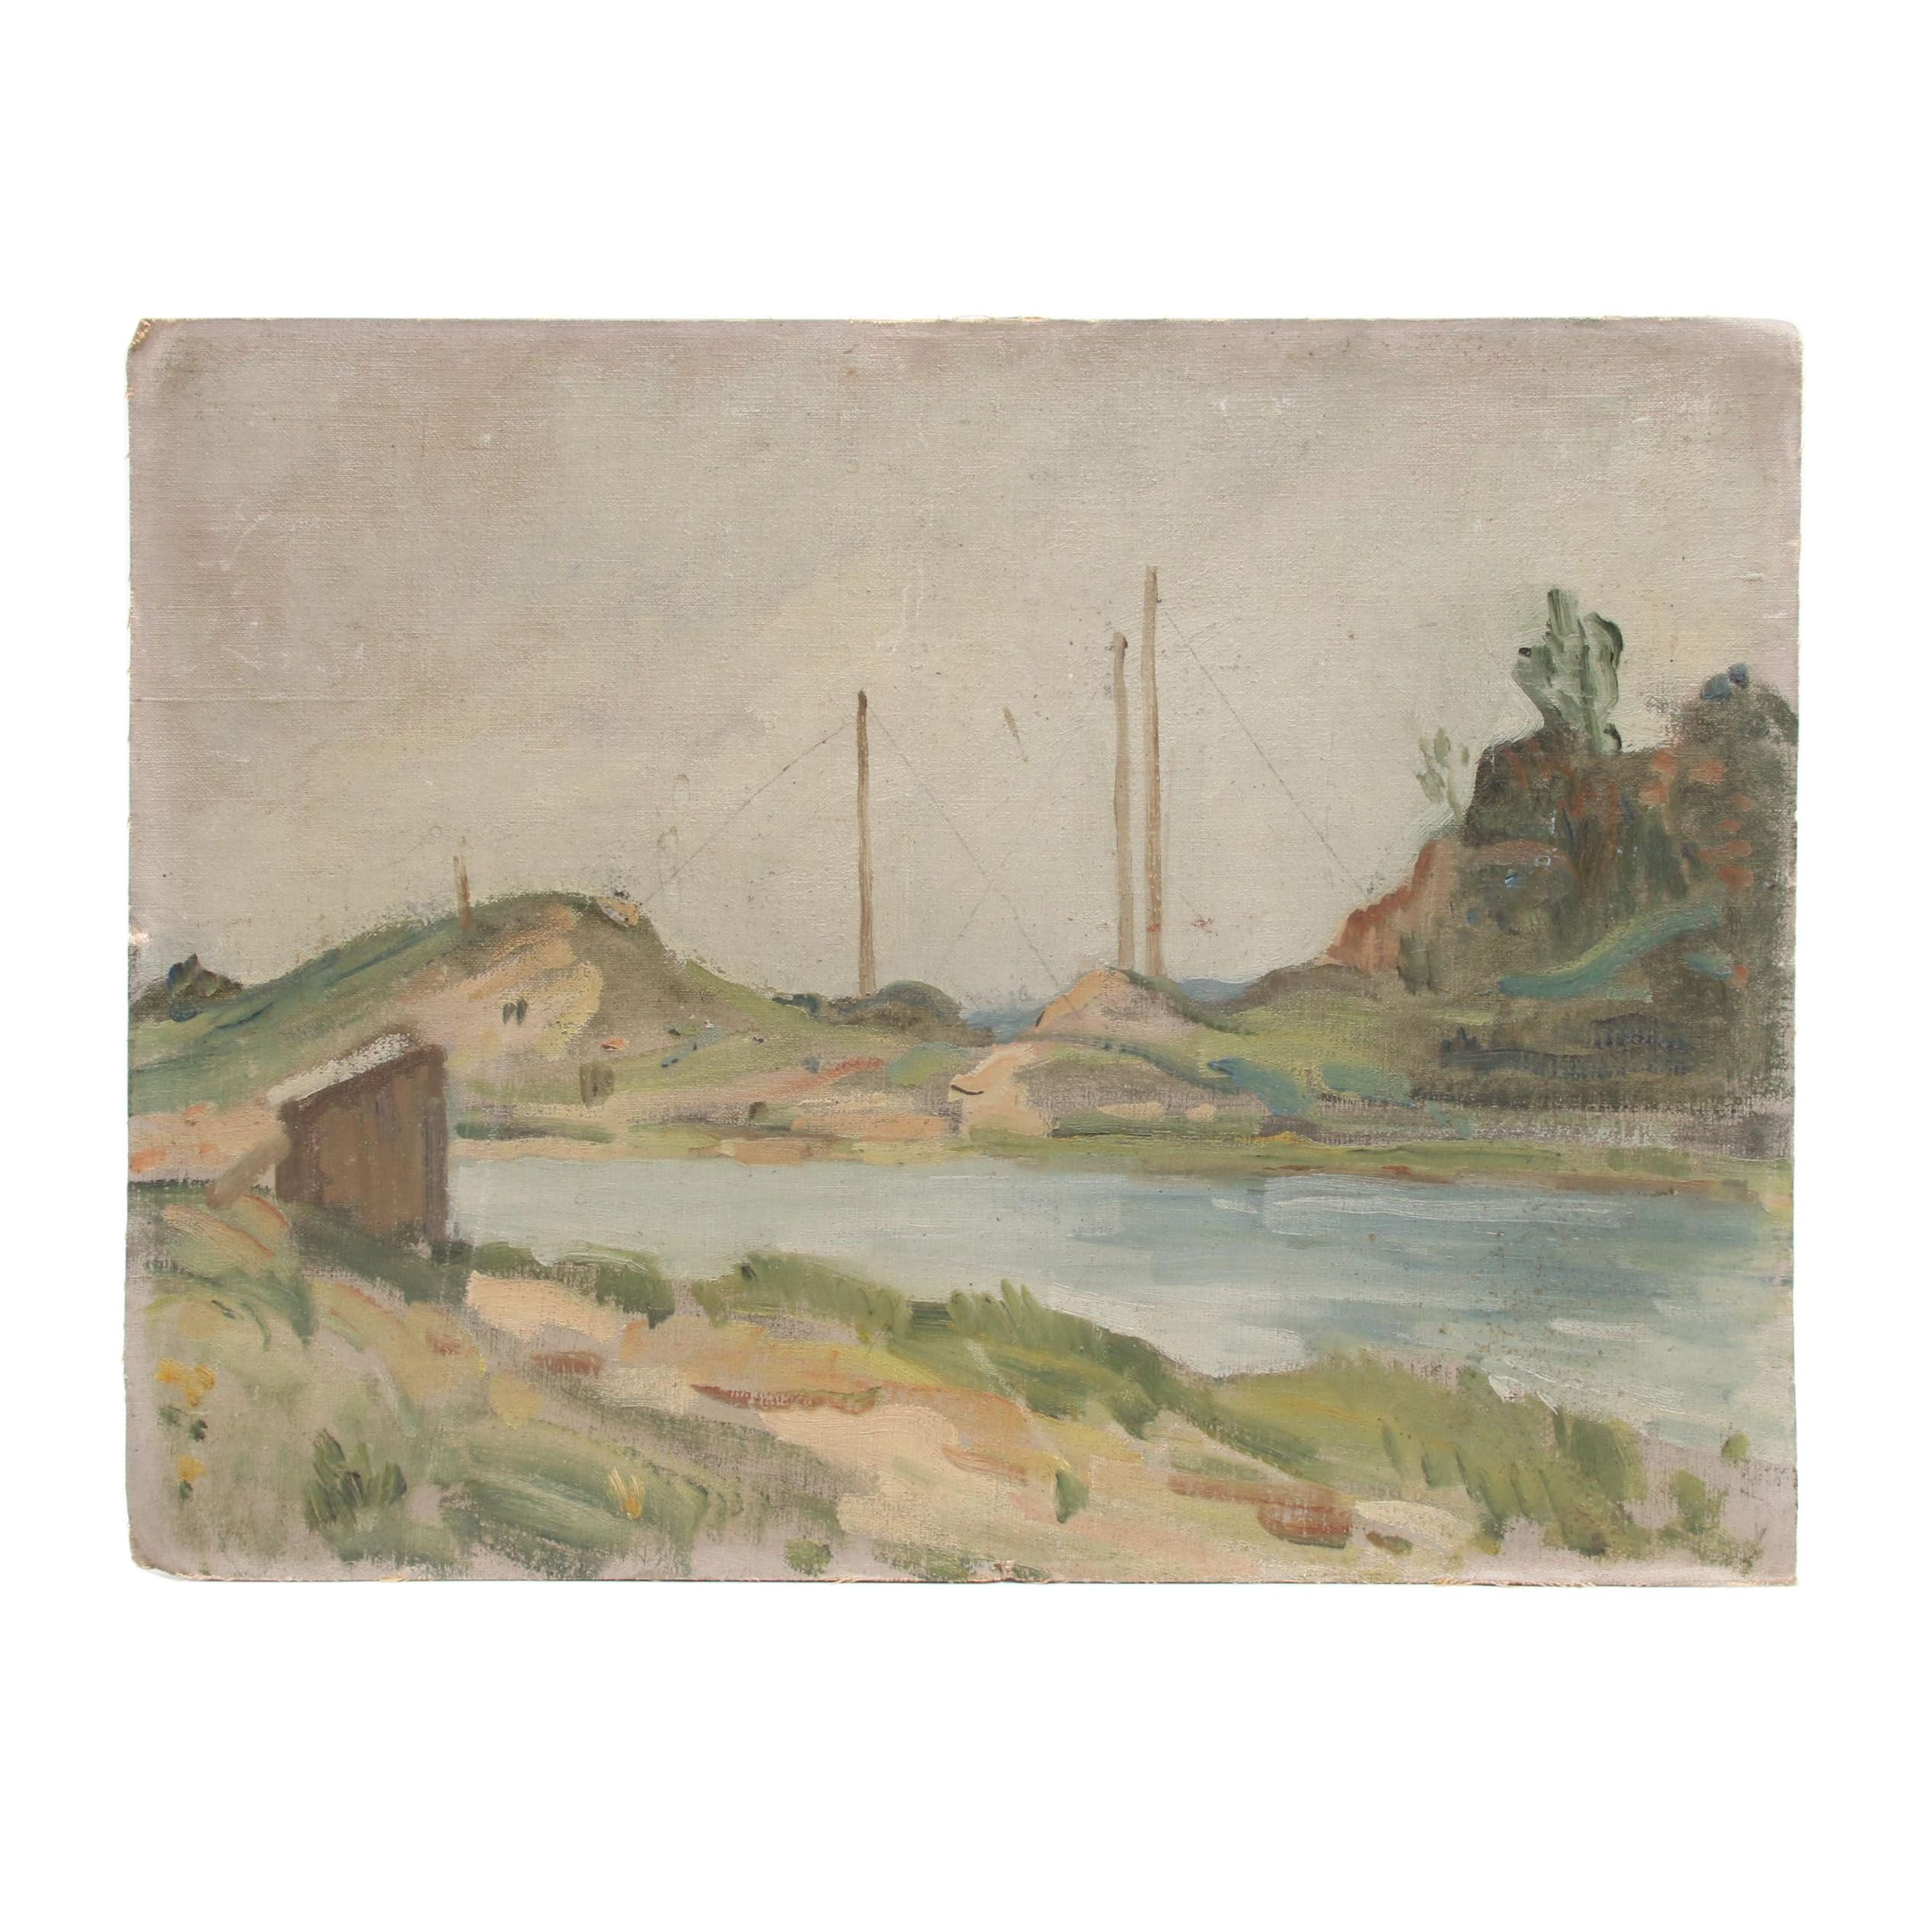 Landscape Oil Painting of River Scene